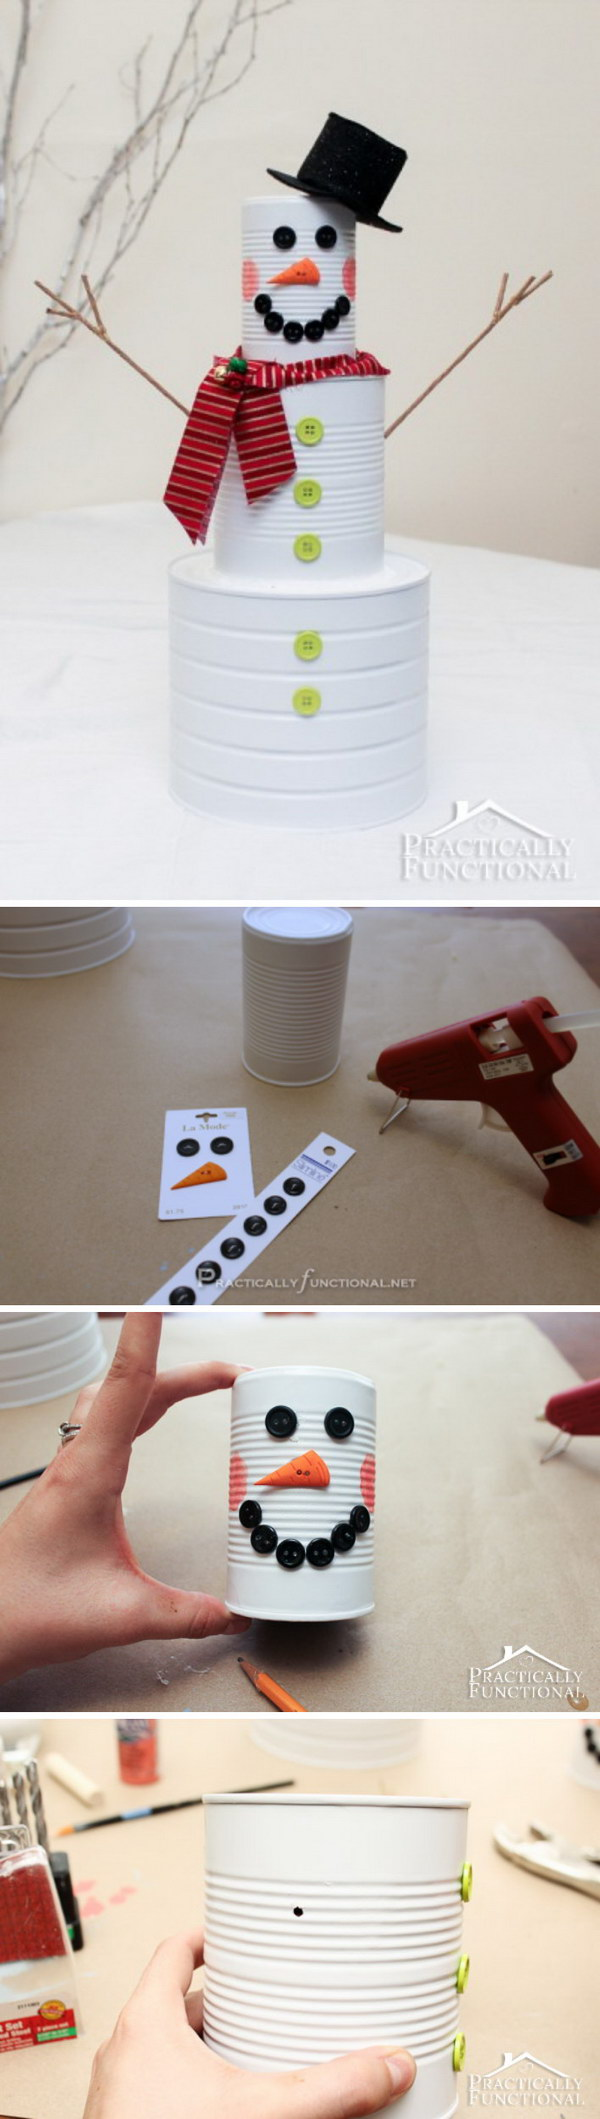 DIY Christmas Craft: Tin Can Snowman.